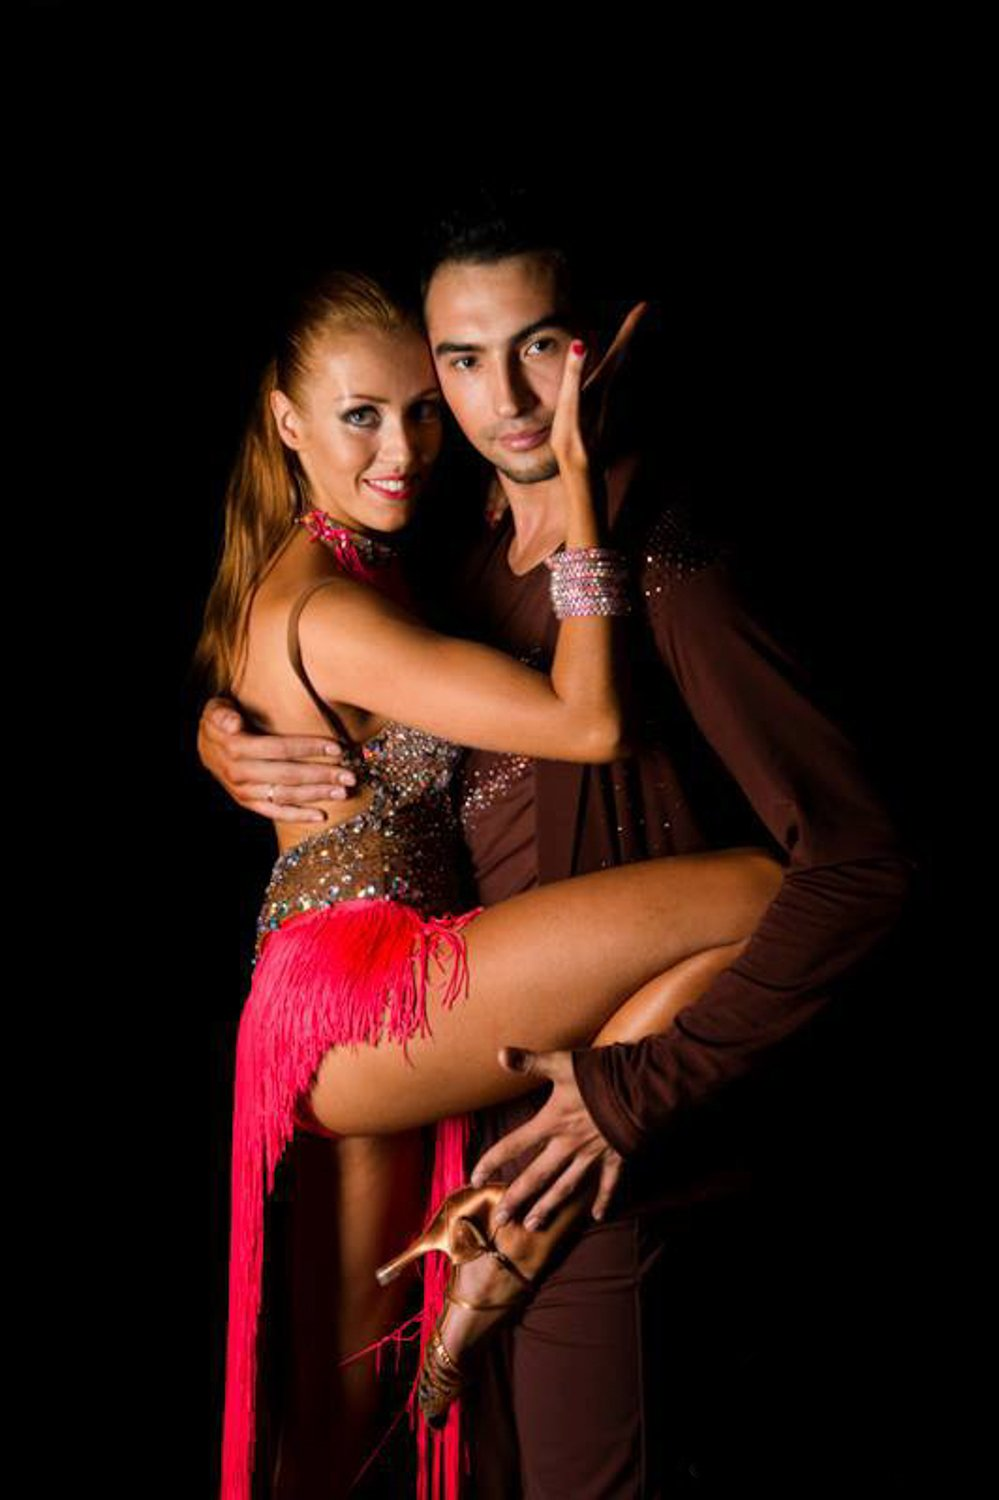 I AM THE WORLD GAMES Dancesport 2 Campaign